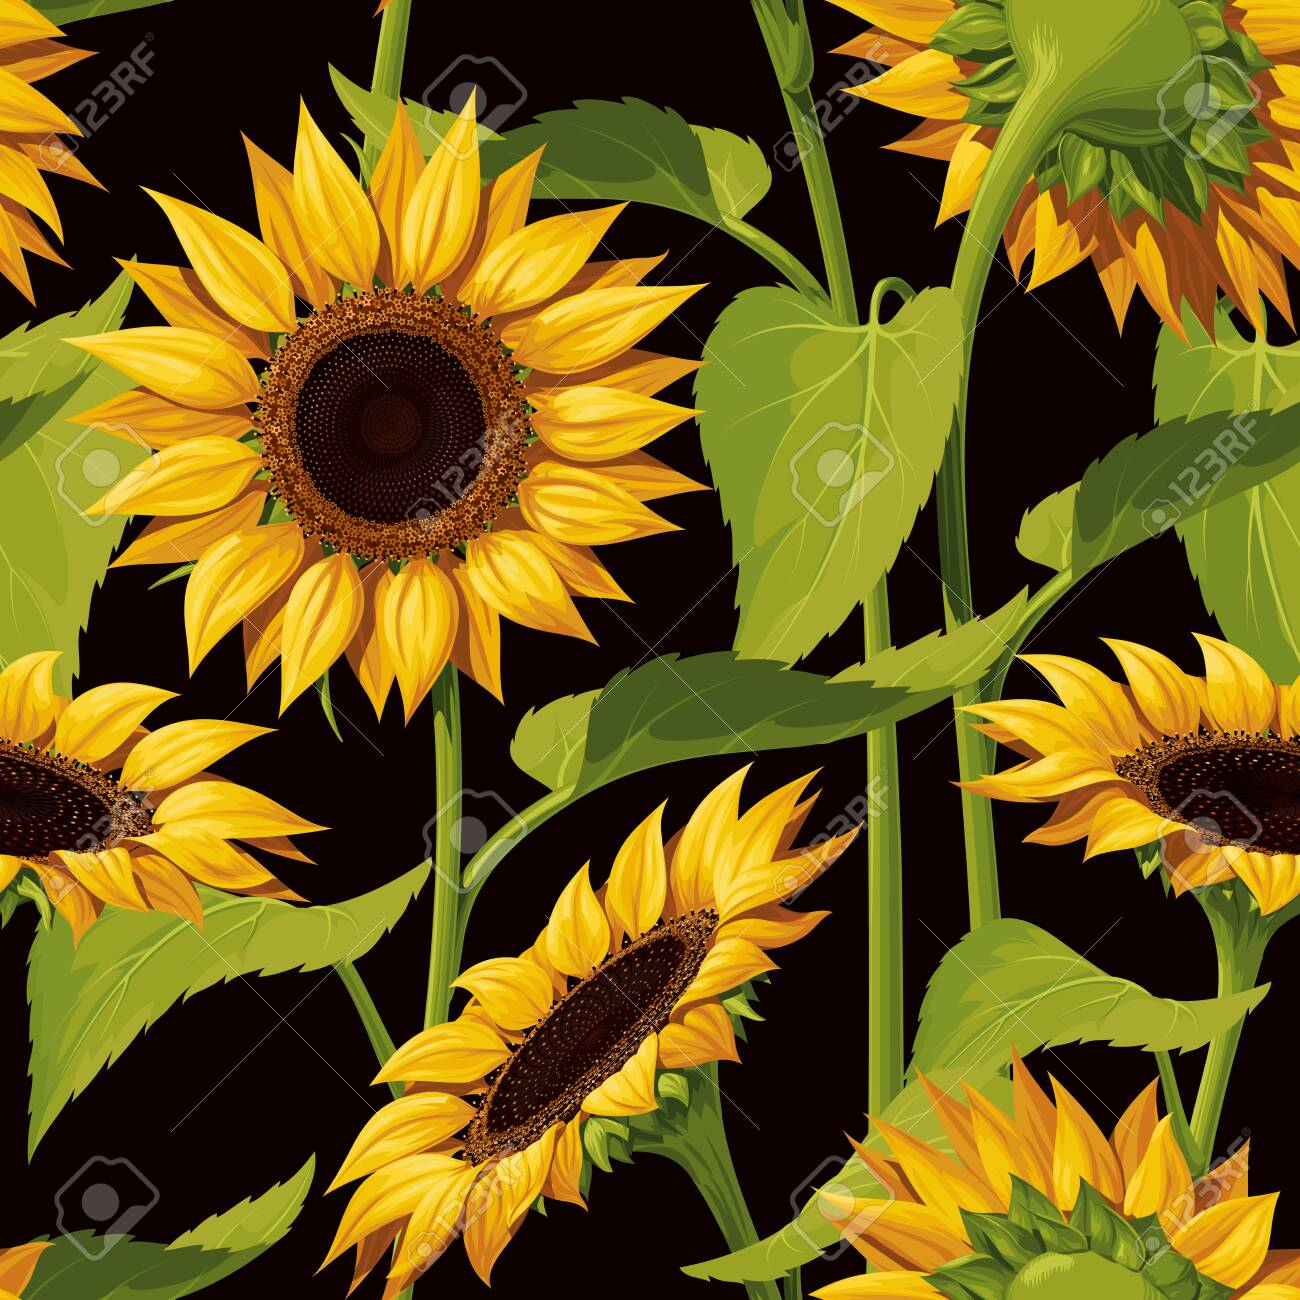 133733715 seamless vector pattern of realistic sunflower flowers on a black background with stems and leaves